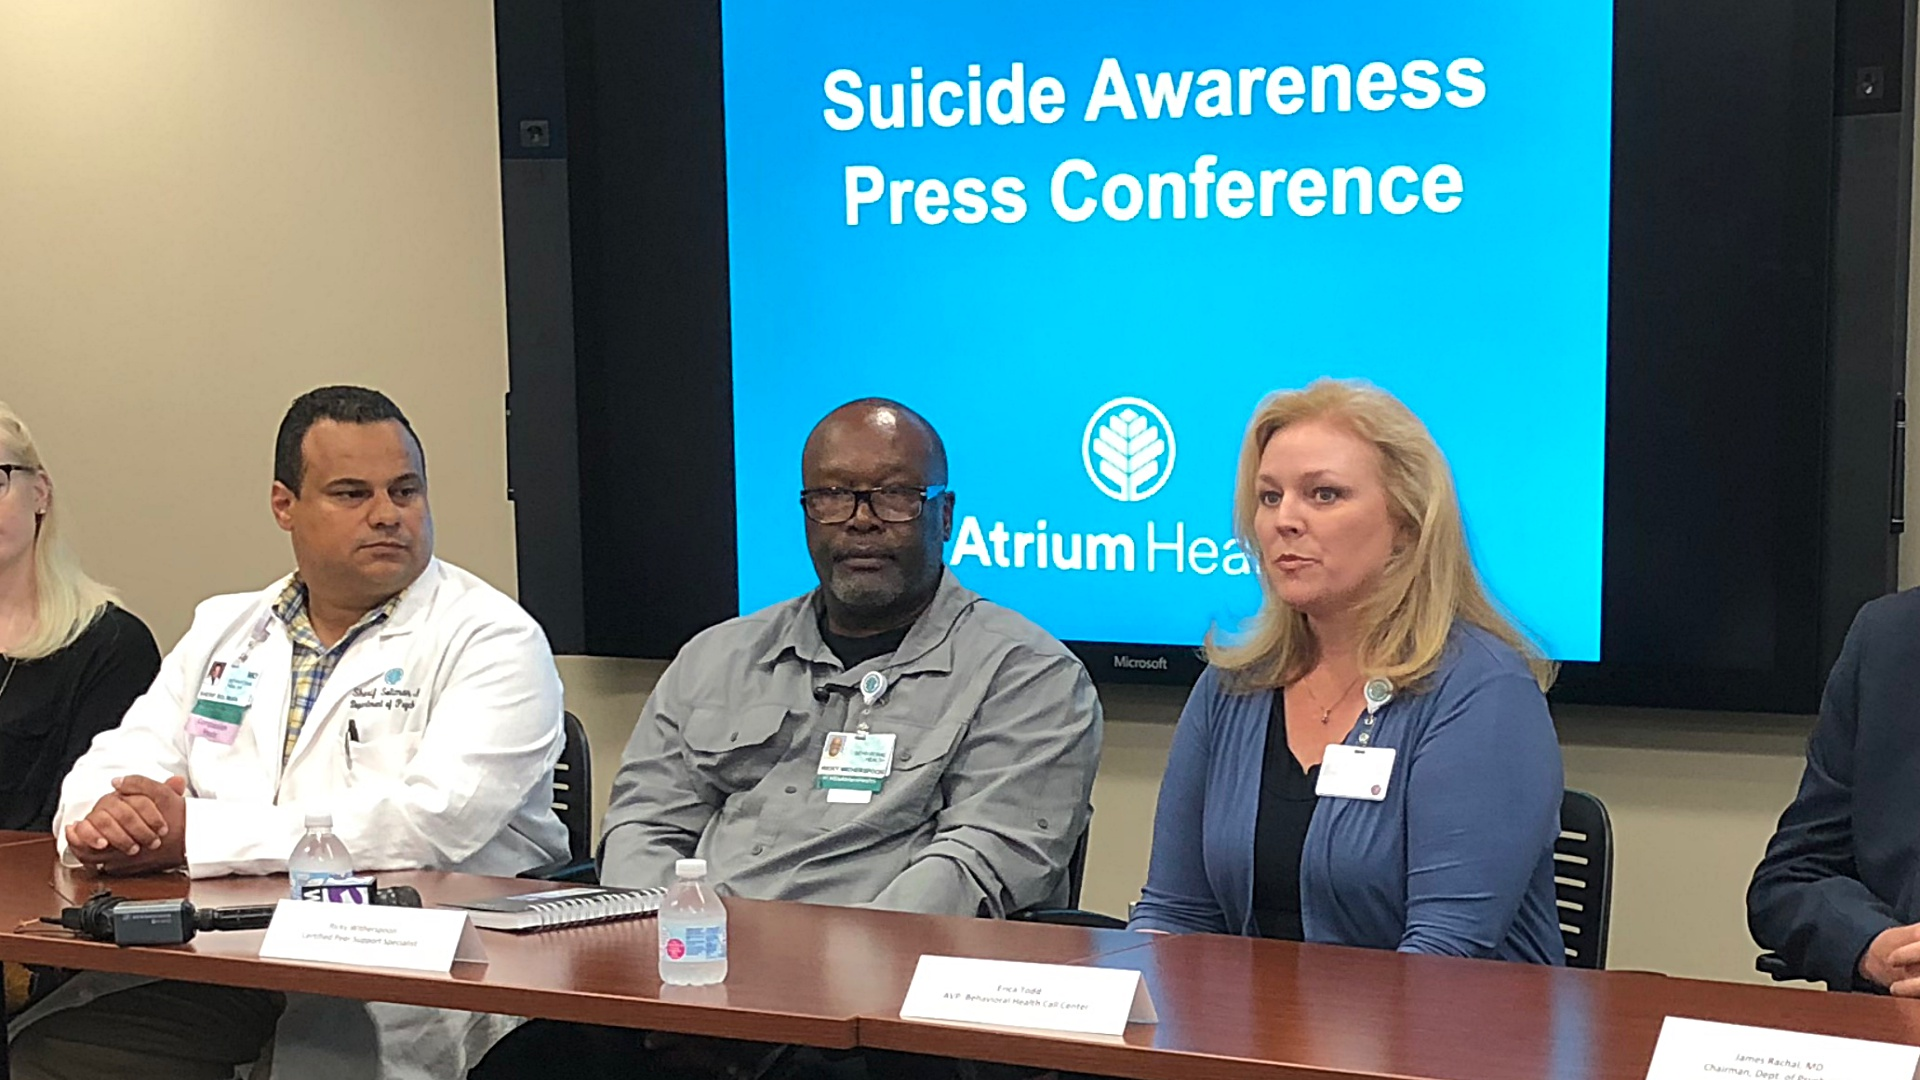 Suicide awareness press conference panel